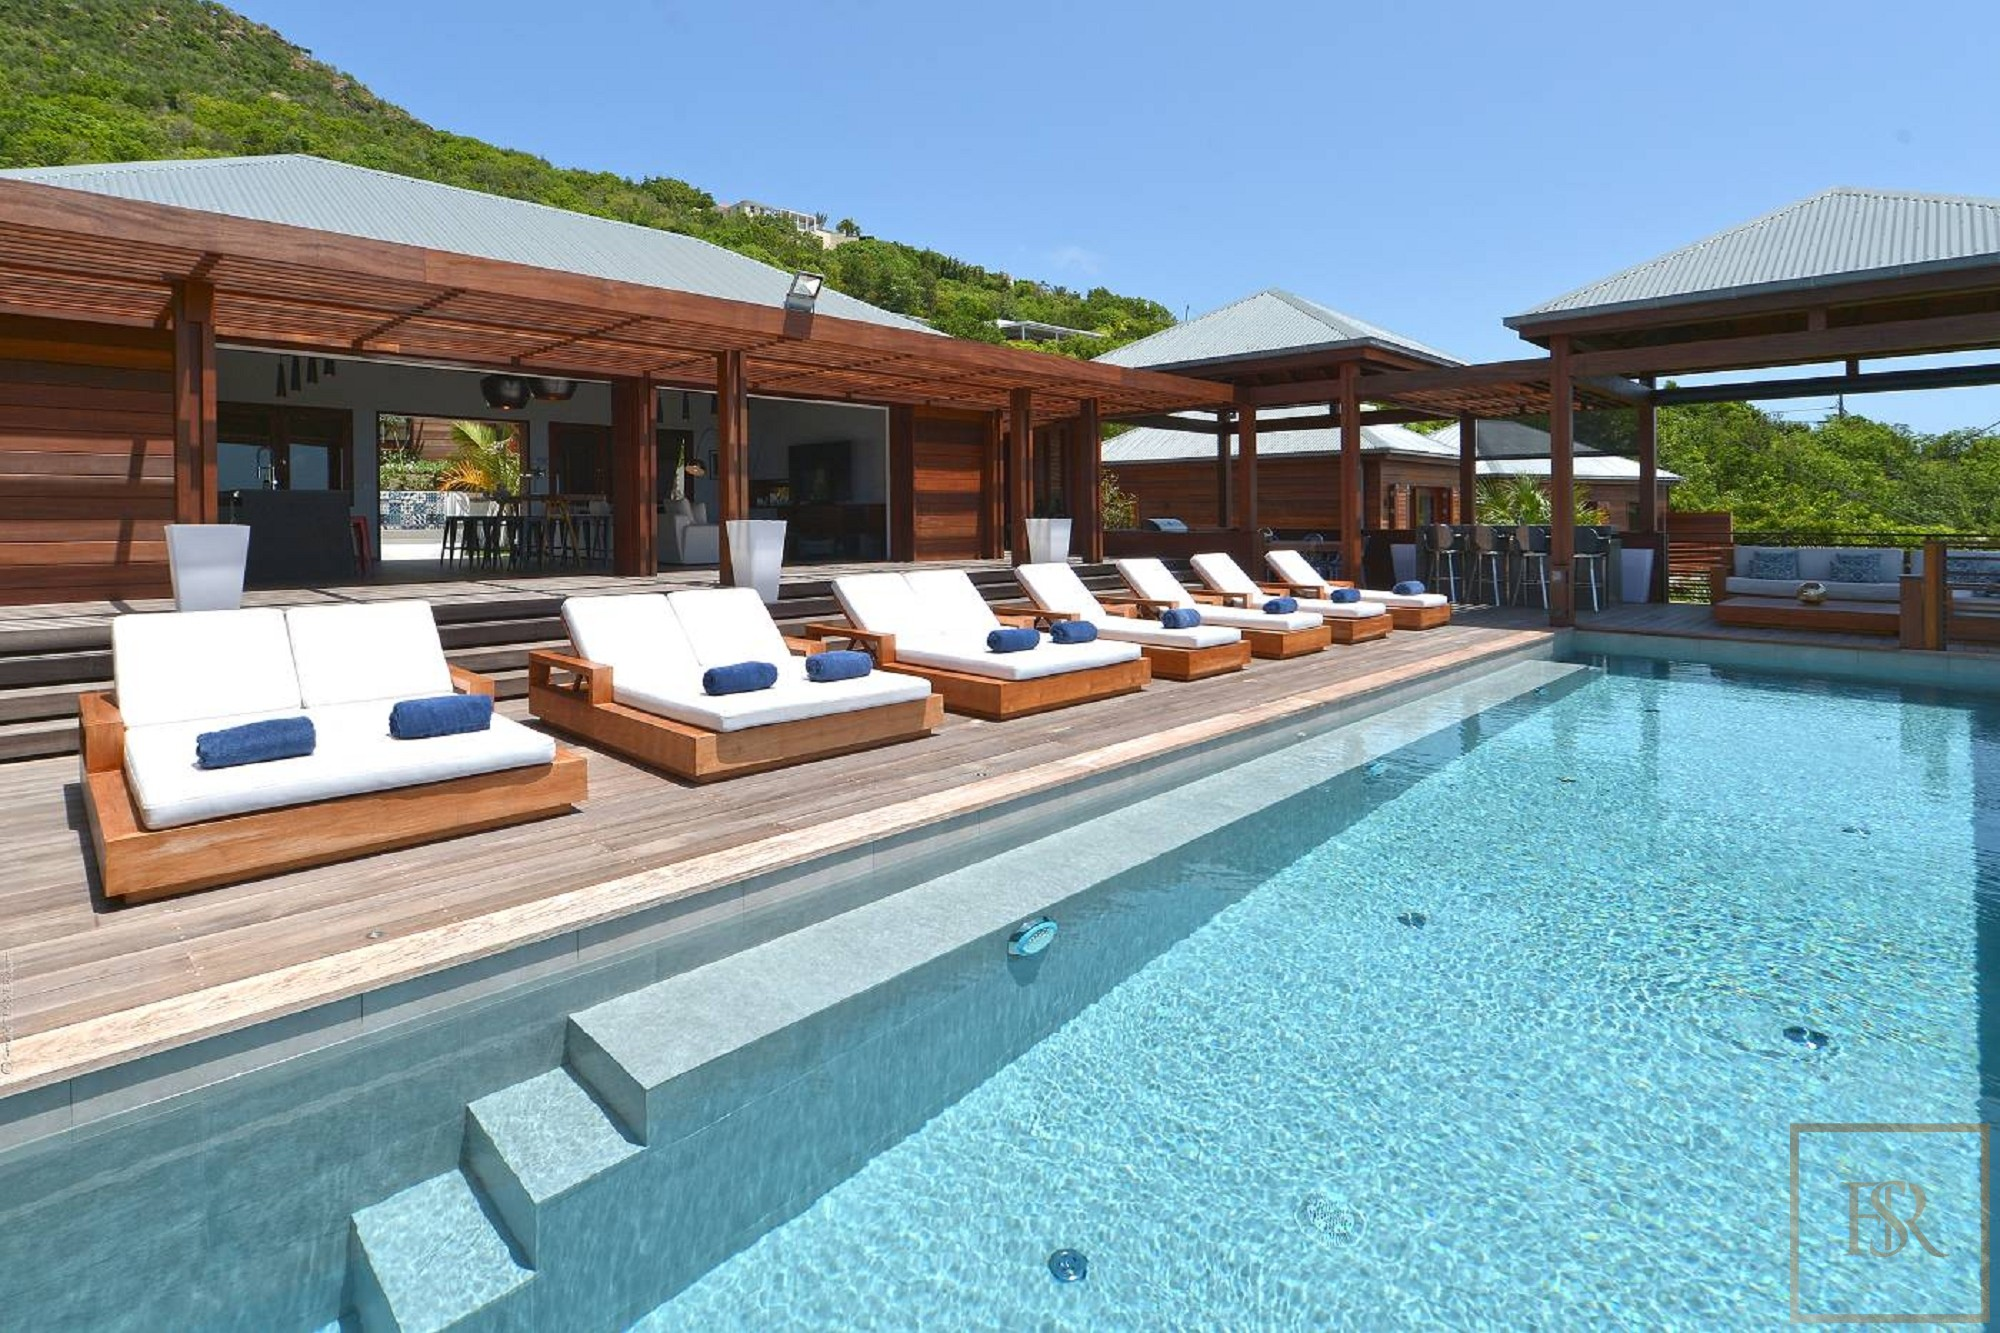 For super rich ultra luxury real estate properties homes, most expensive houses, rent unique penthouse apartment and ultimate villa in St Barth - Devé St Barth St. Barthélemy for rent holiday